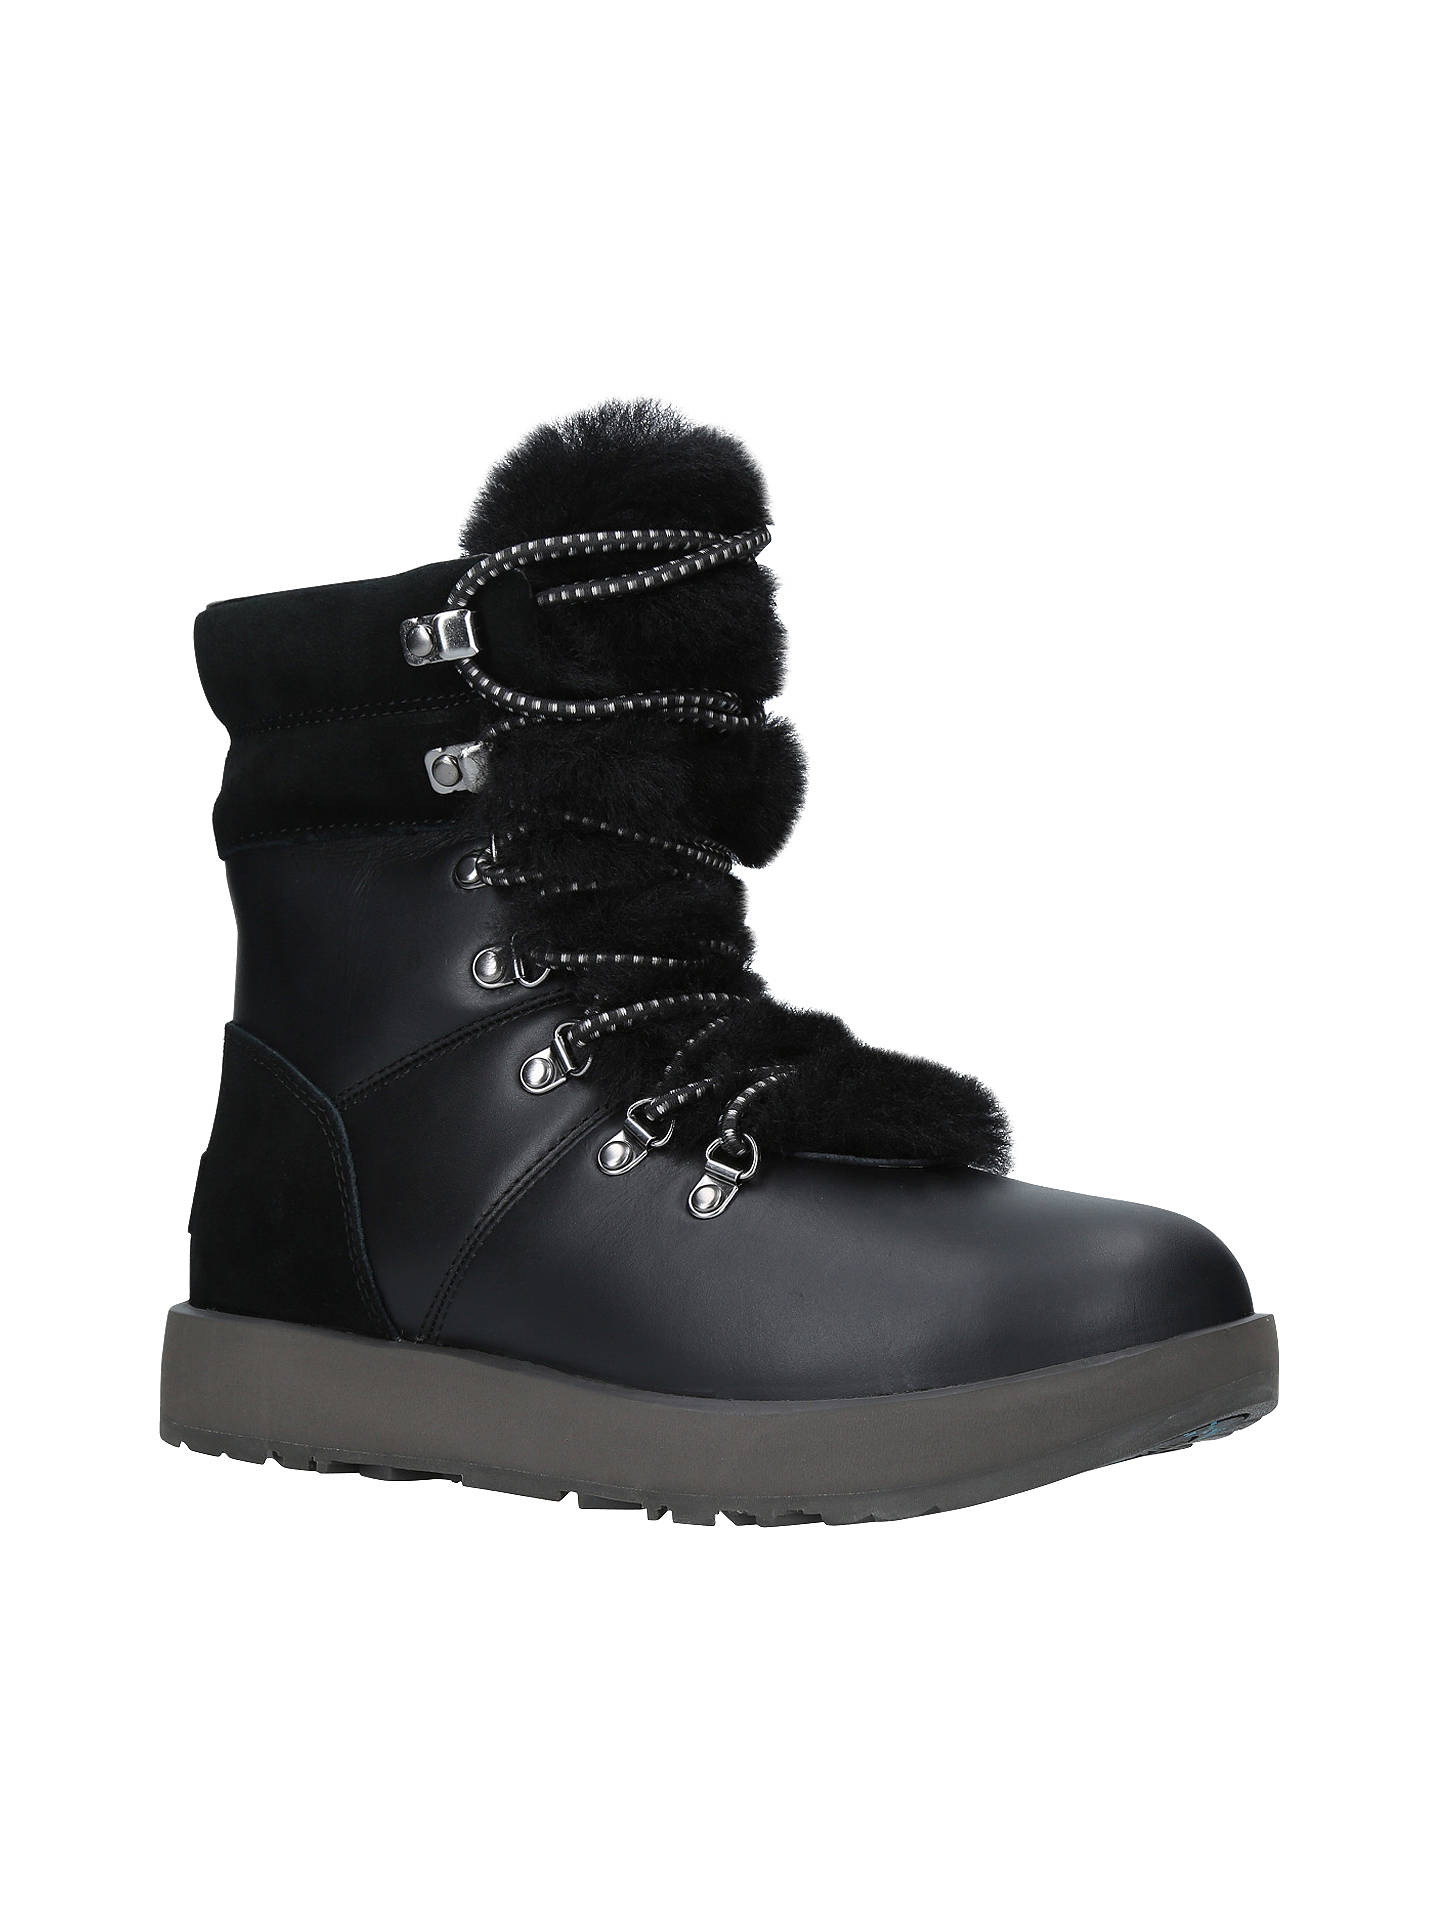 UGG Viki Waterproof Ankle Boots, Black Leather at John Lewis